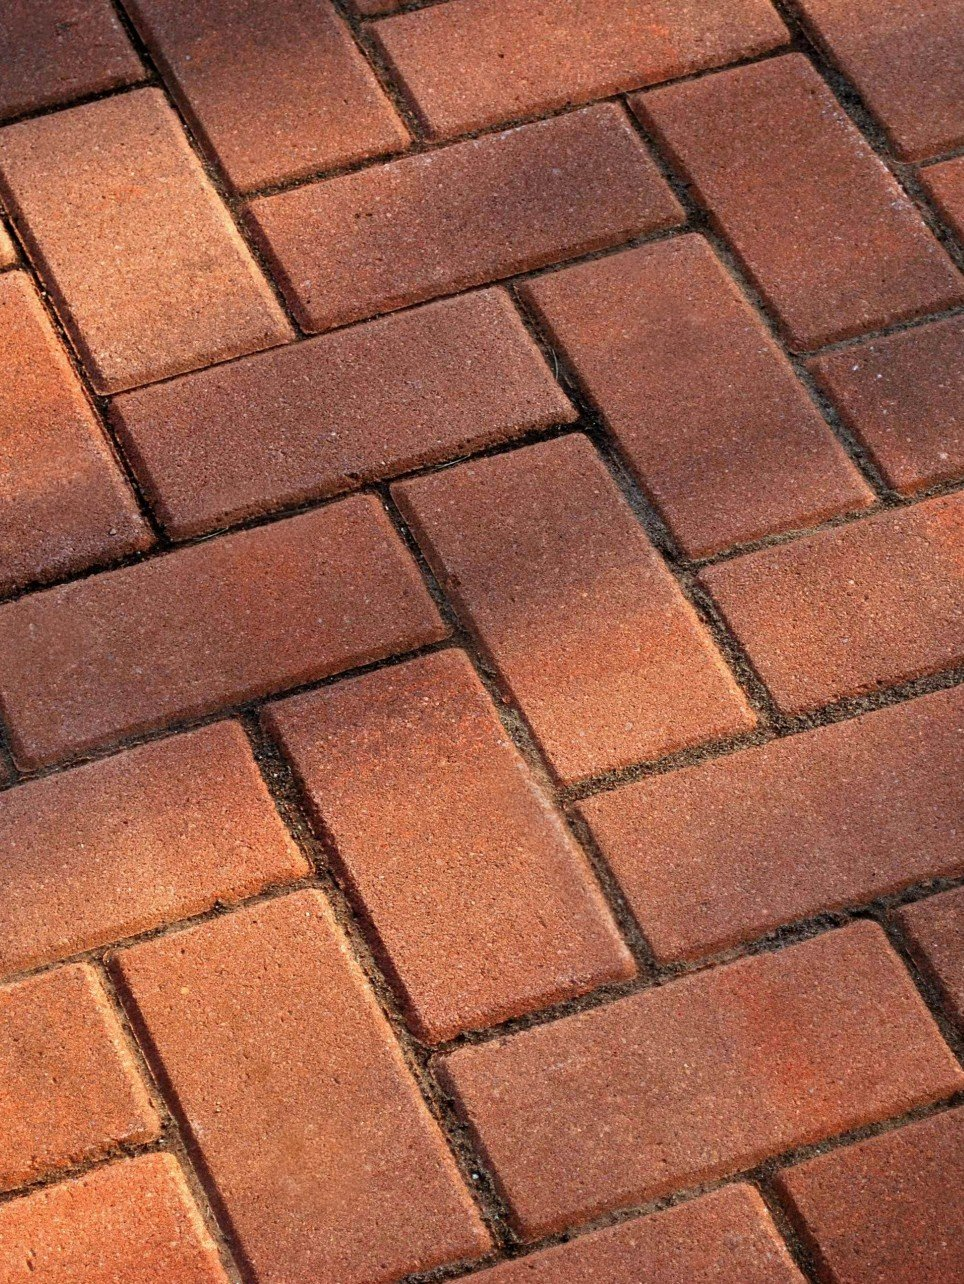 Block Paving Companies Astwood Bank